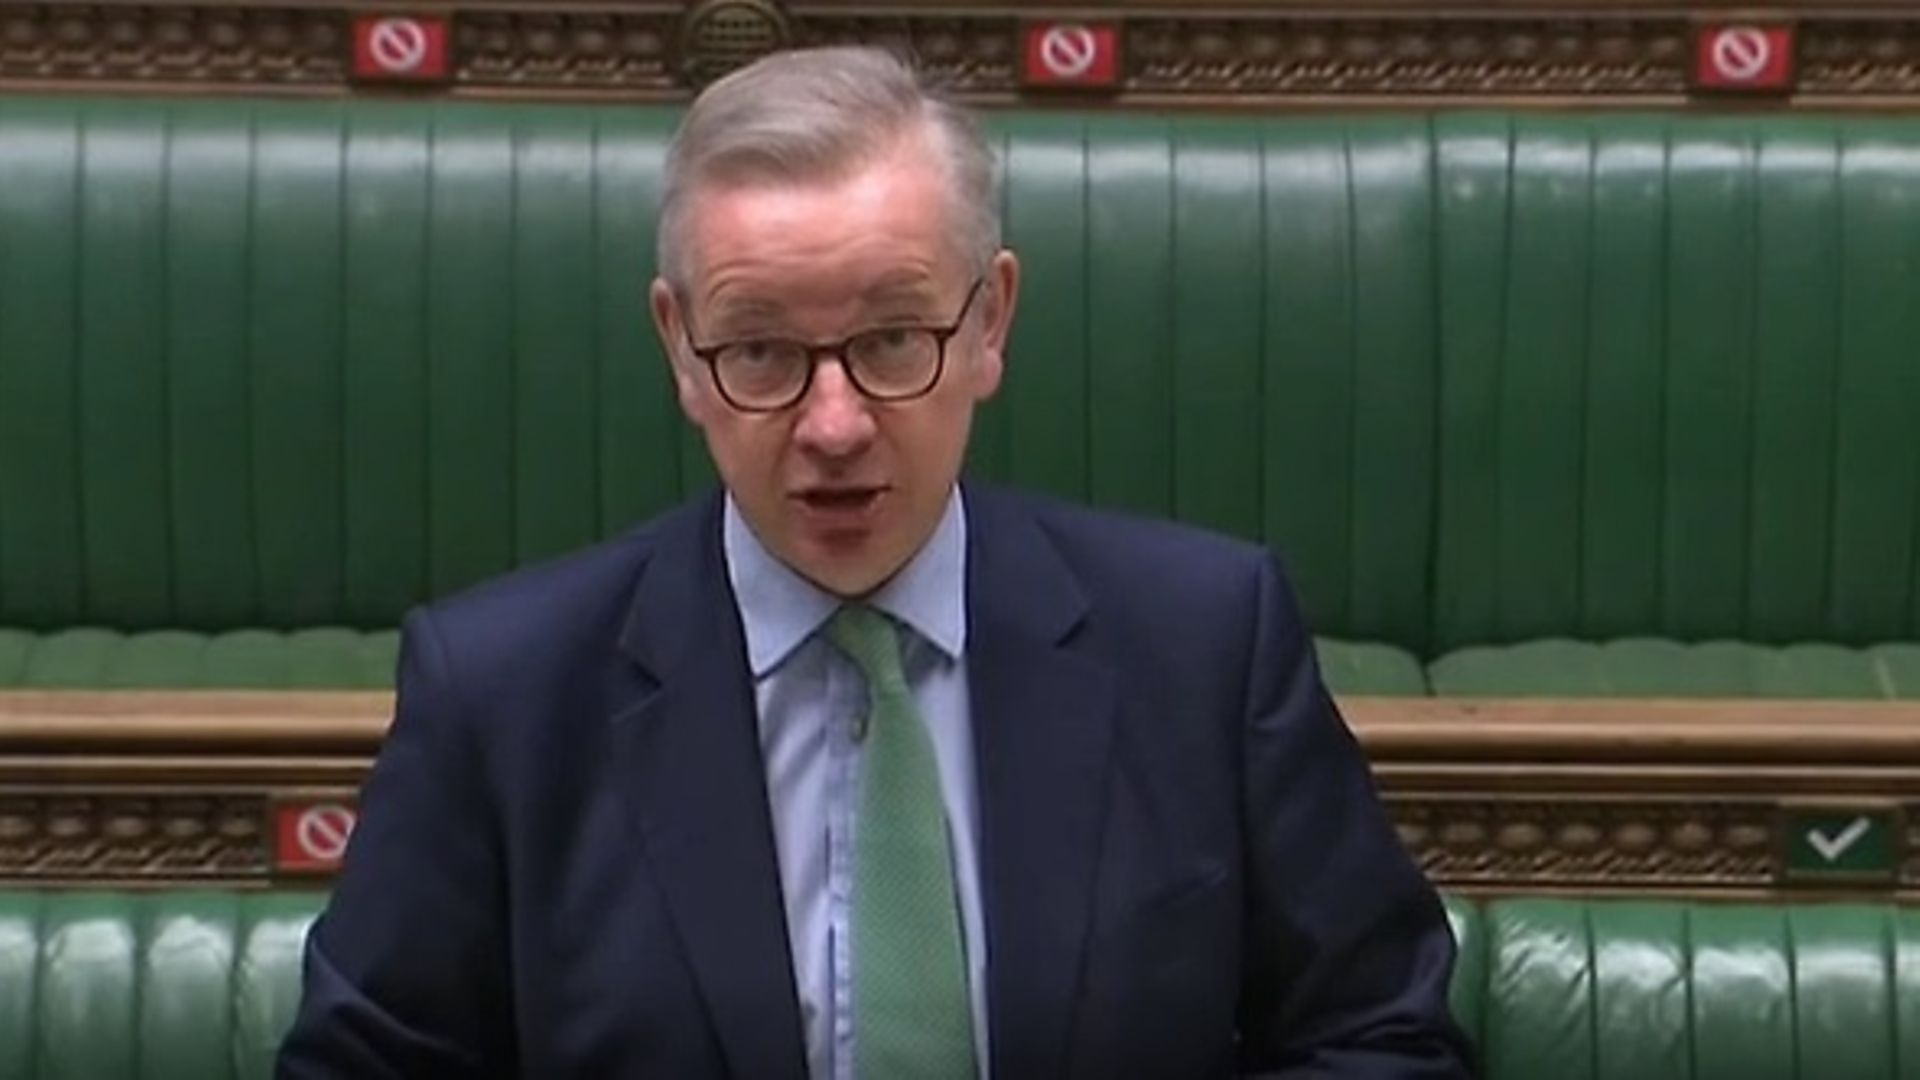 Michael Gove in the House of Commons - Credit: Parliament TV